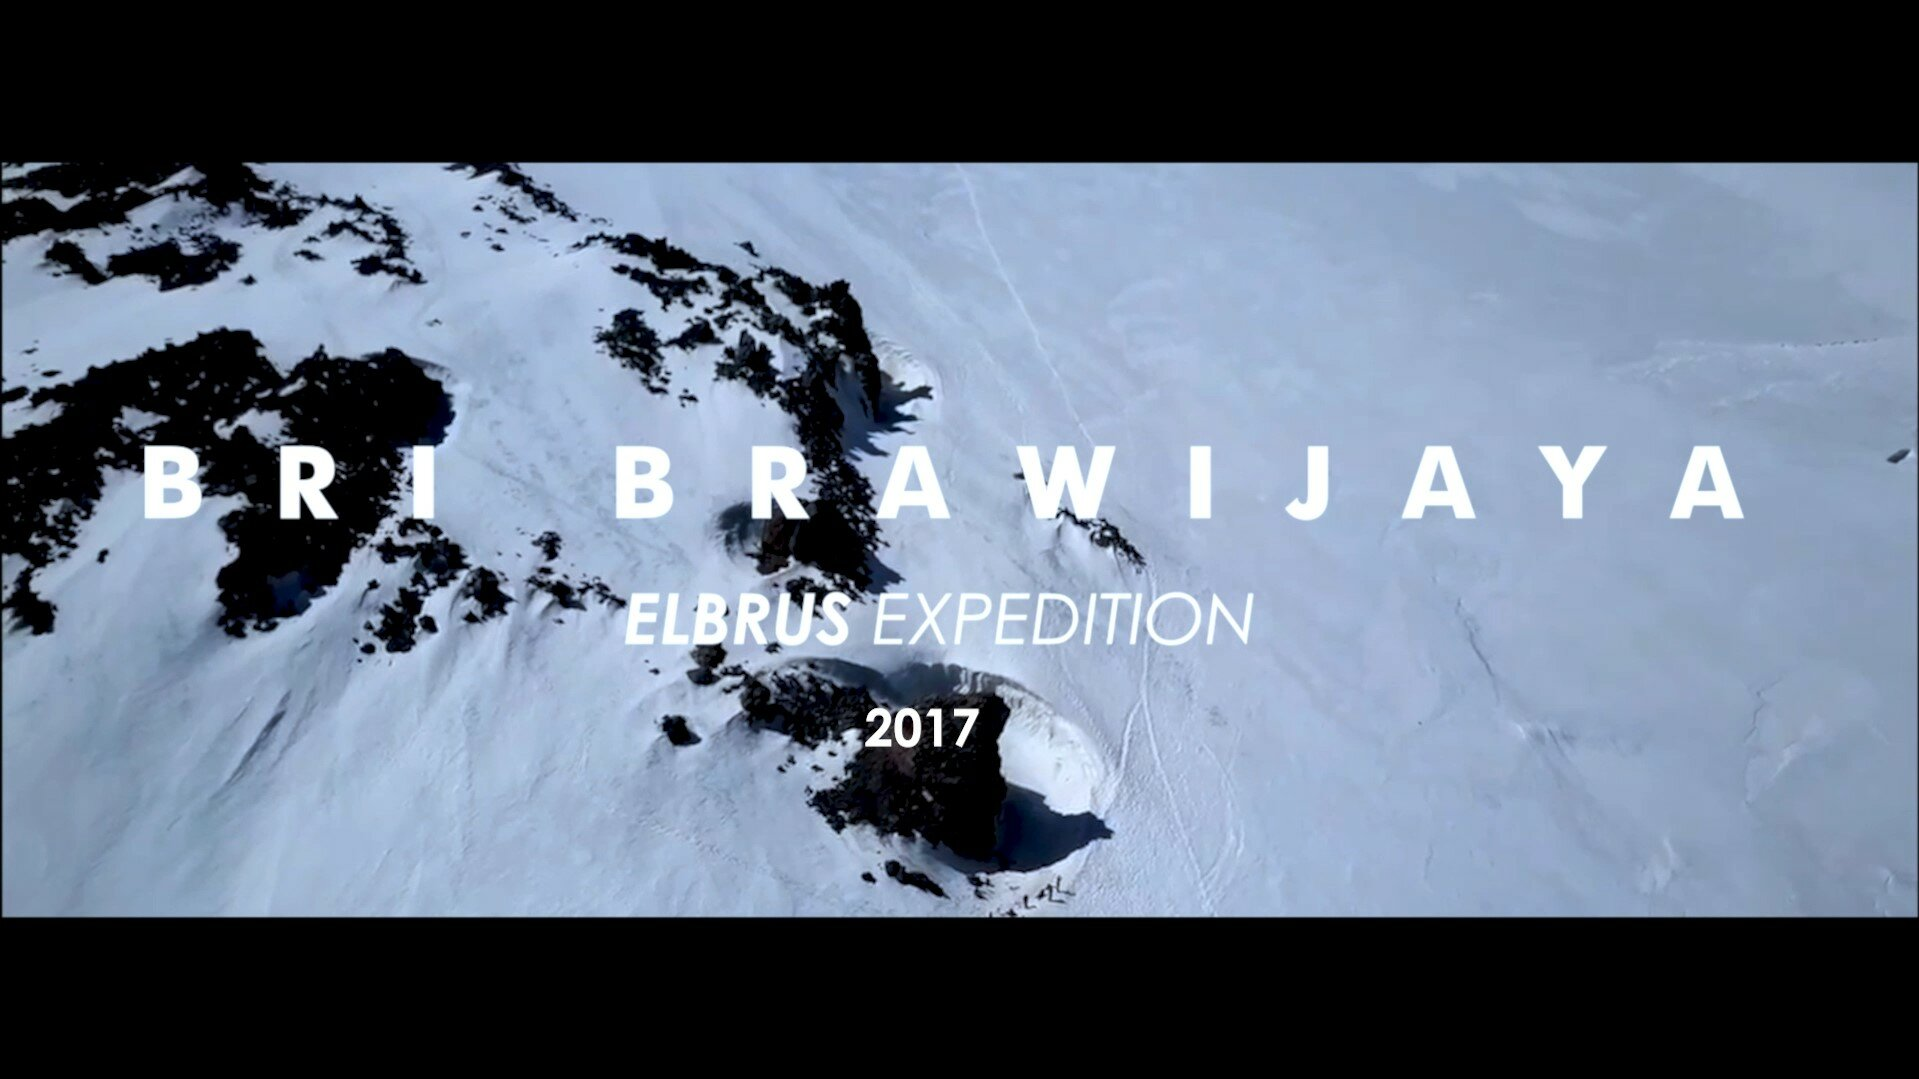 DOCUMENTARY BRI-BRAWIJAYA ELBRUS EXPEDITION 2017